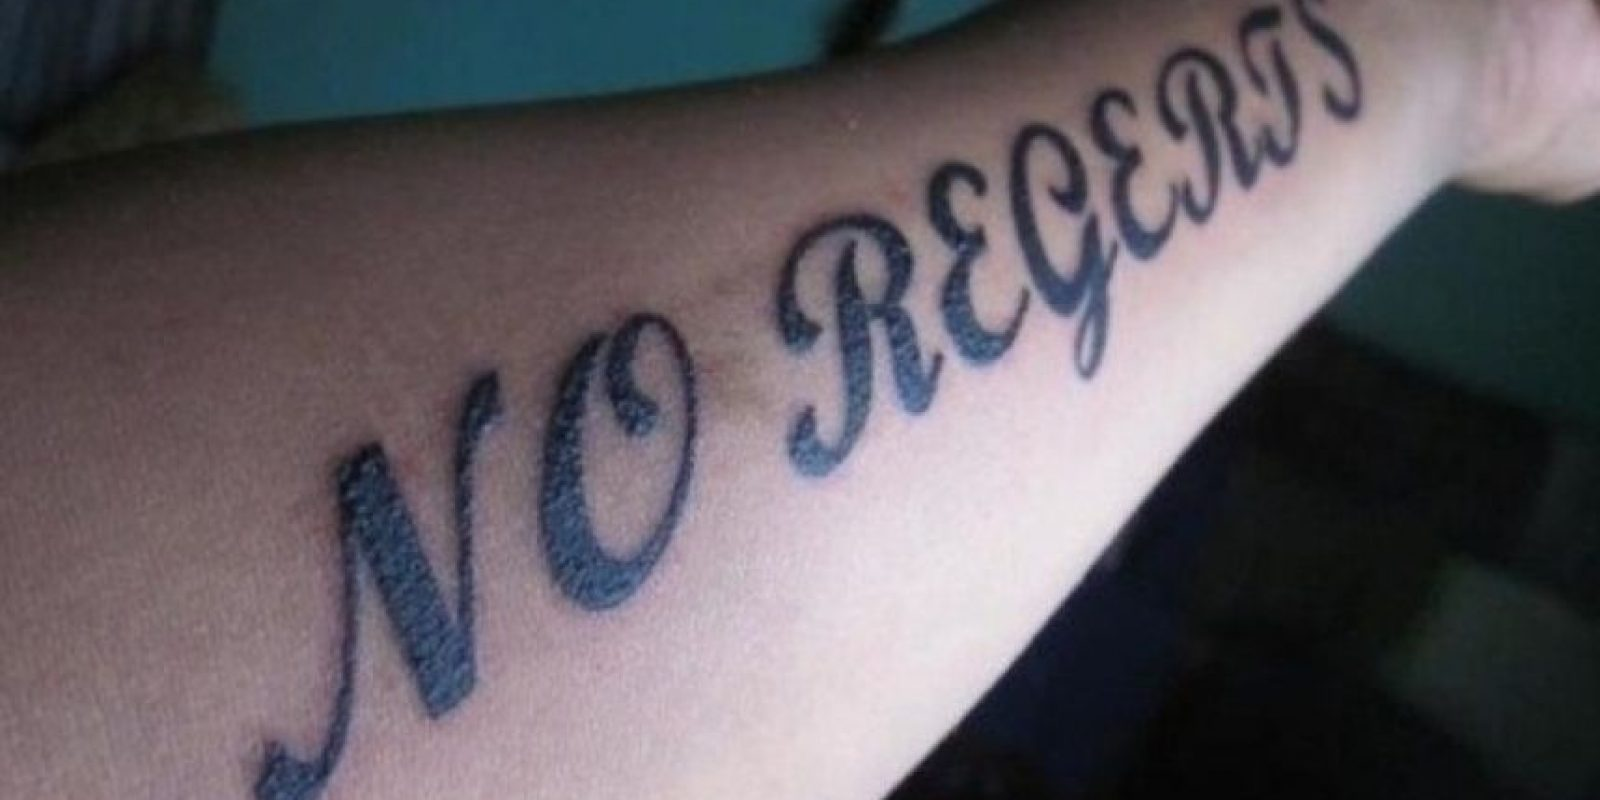 Regrets, regrets! Foto: worldwideinterweb